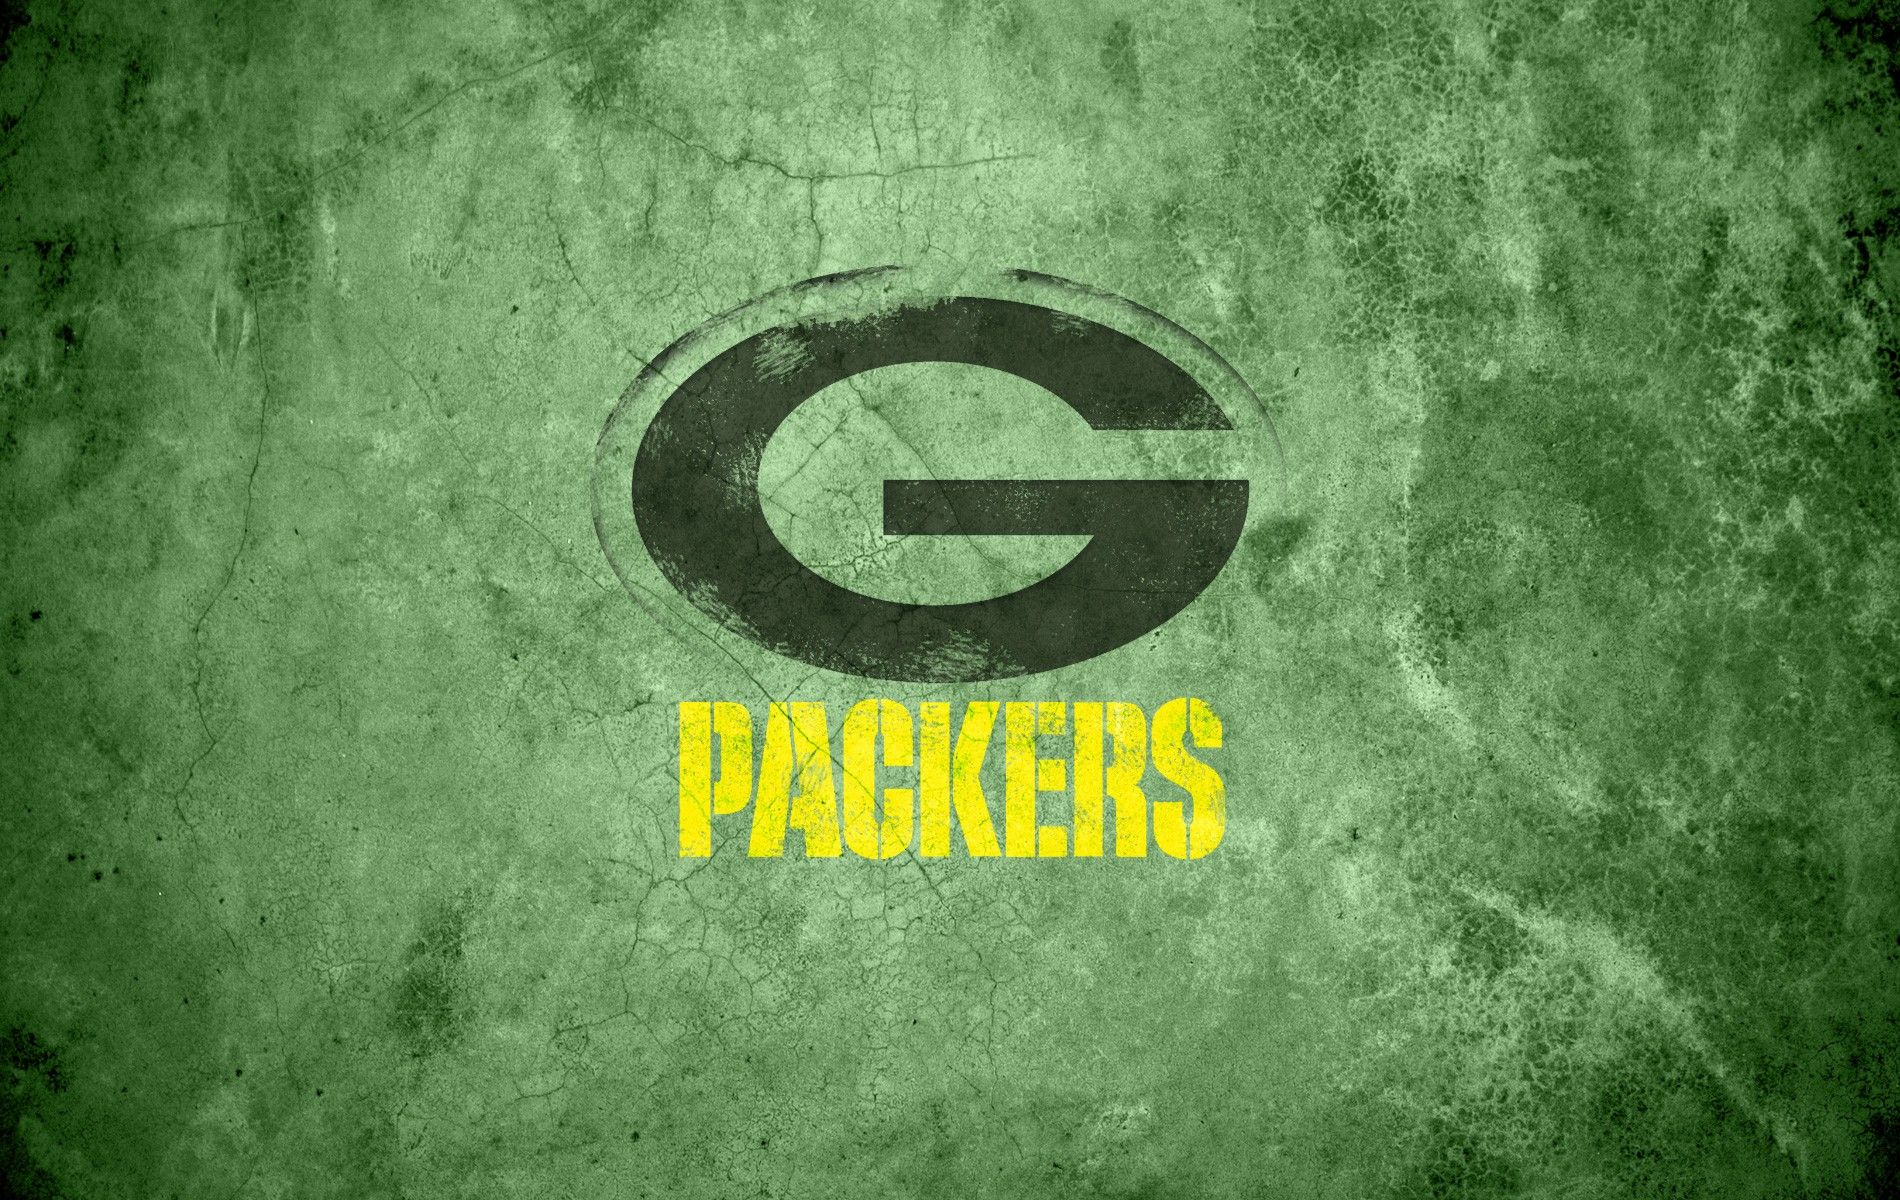 GreenBay Packers Wallpaper HD Green bay packers